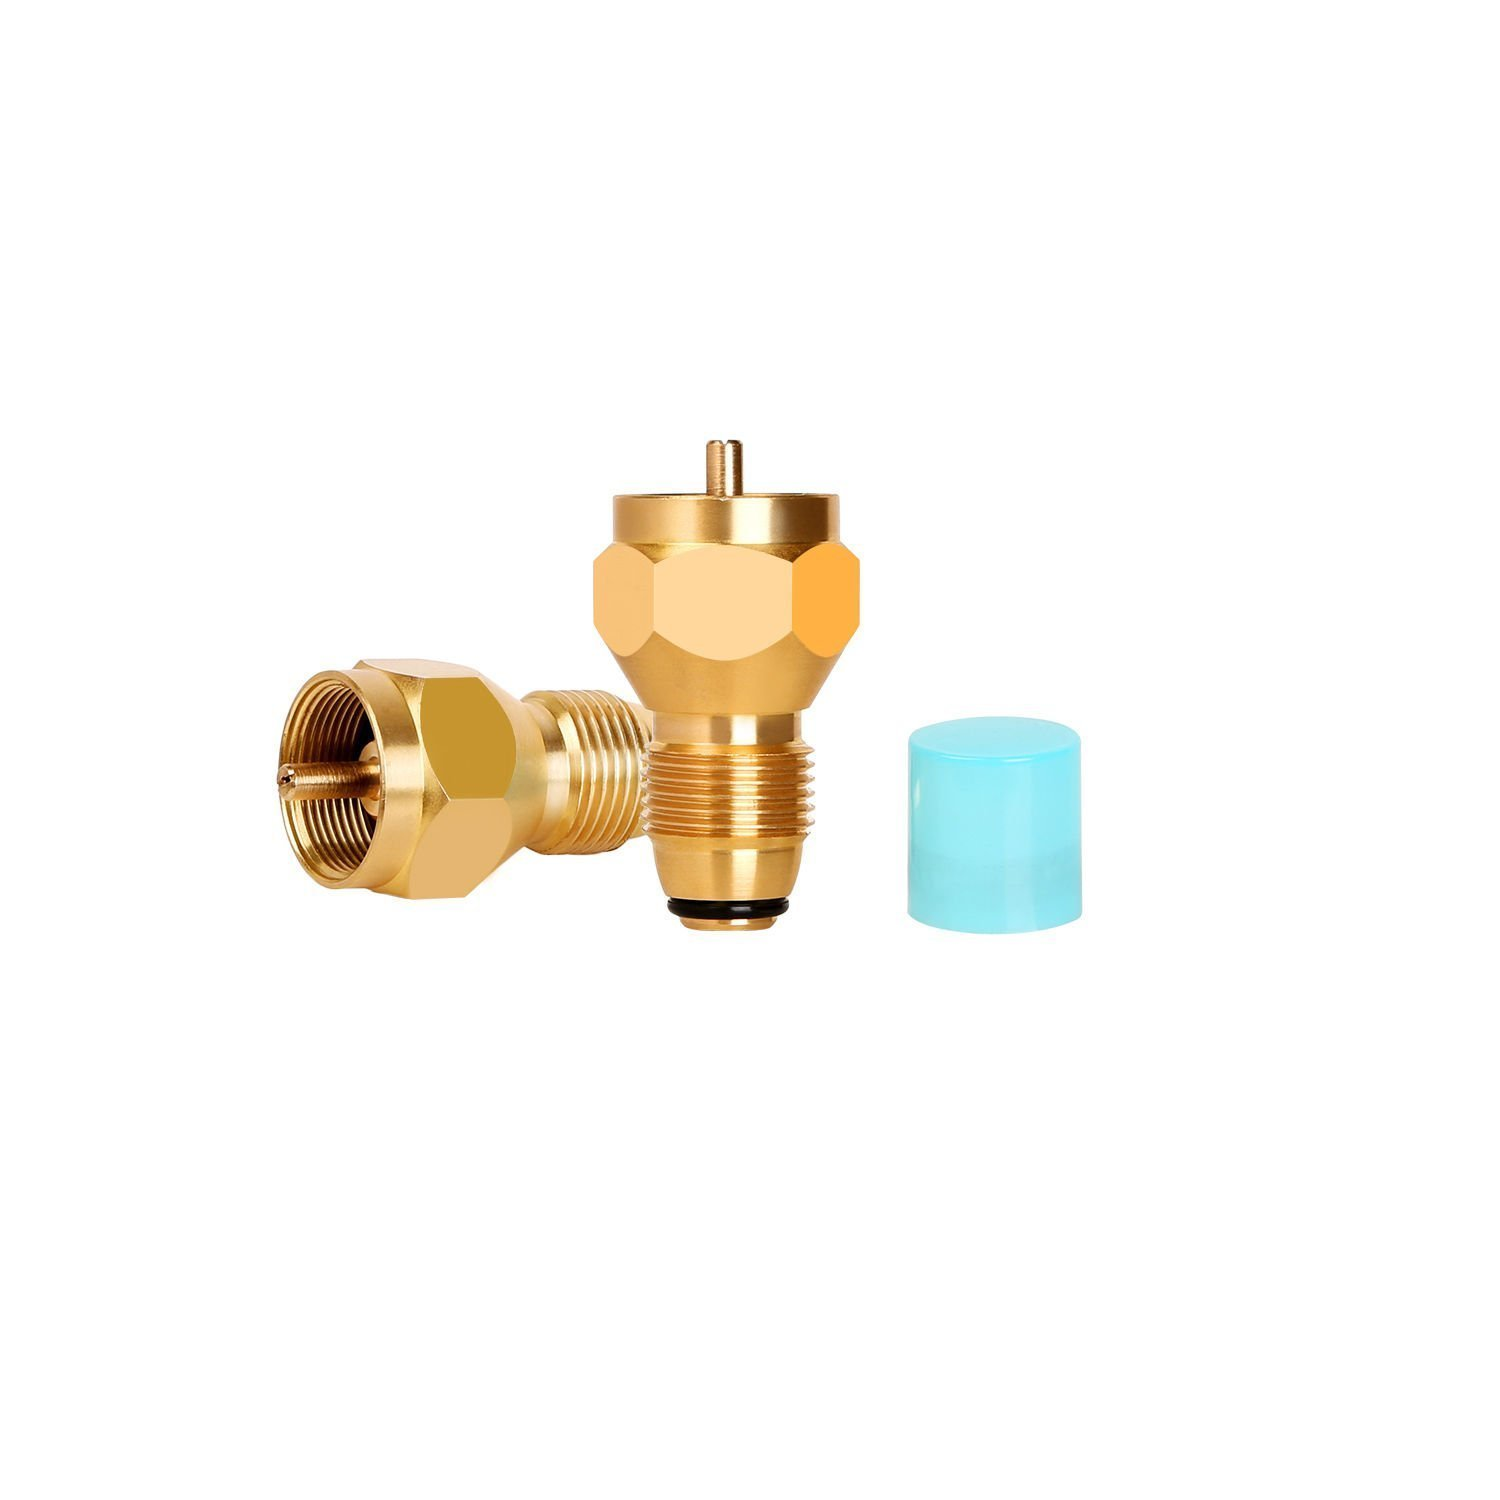 iMeshbean One pound Tank Propane refill adapter for small cylinders 100% Solid Brass with safety protection